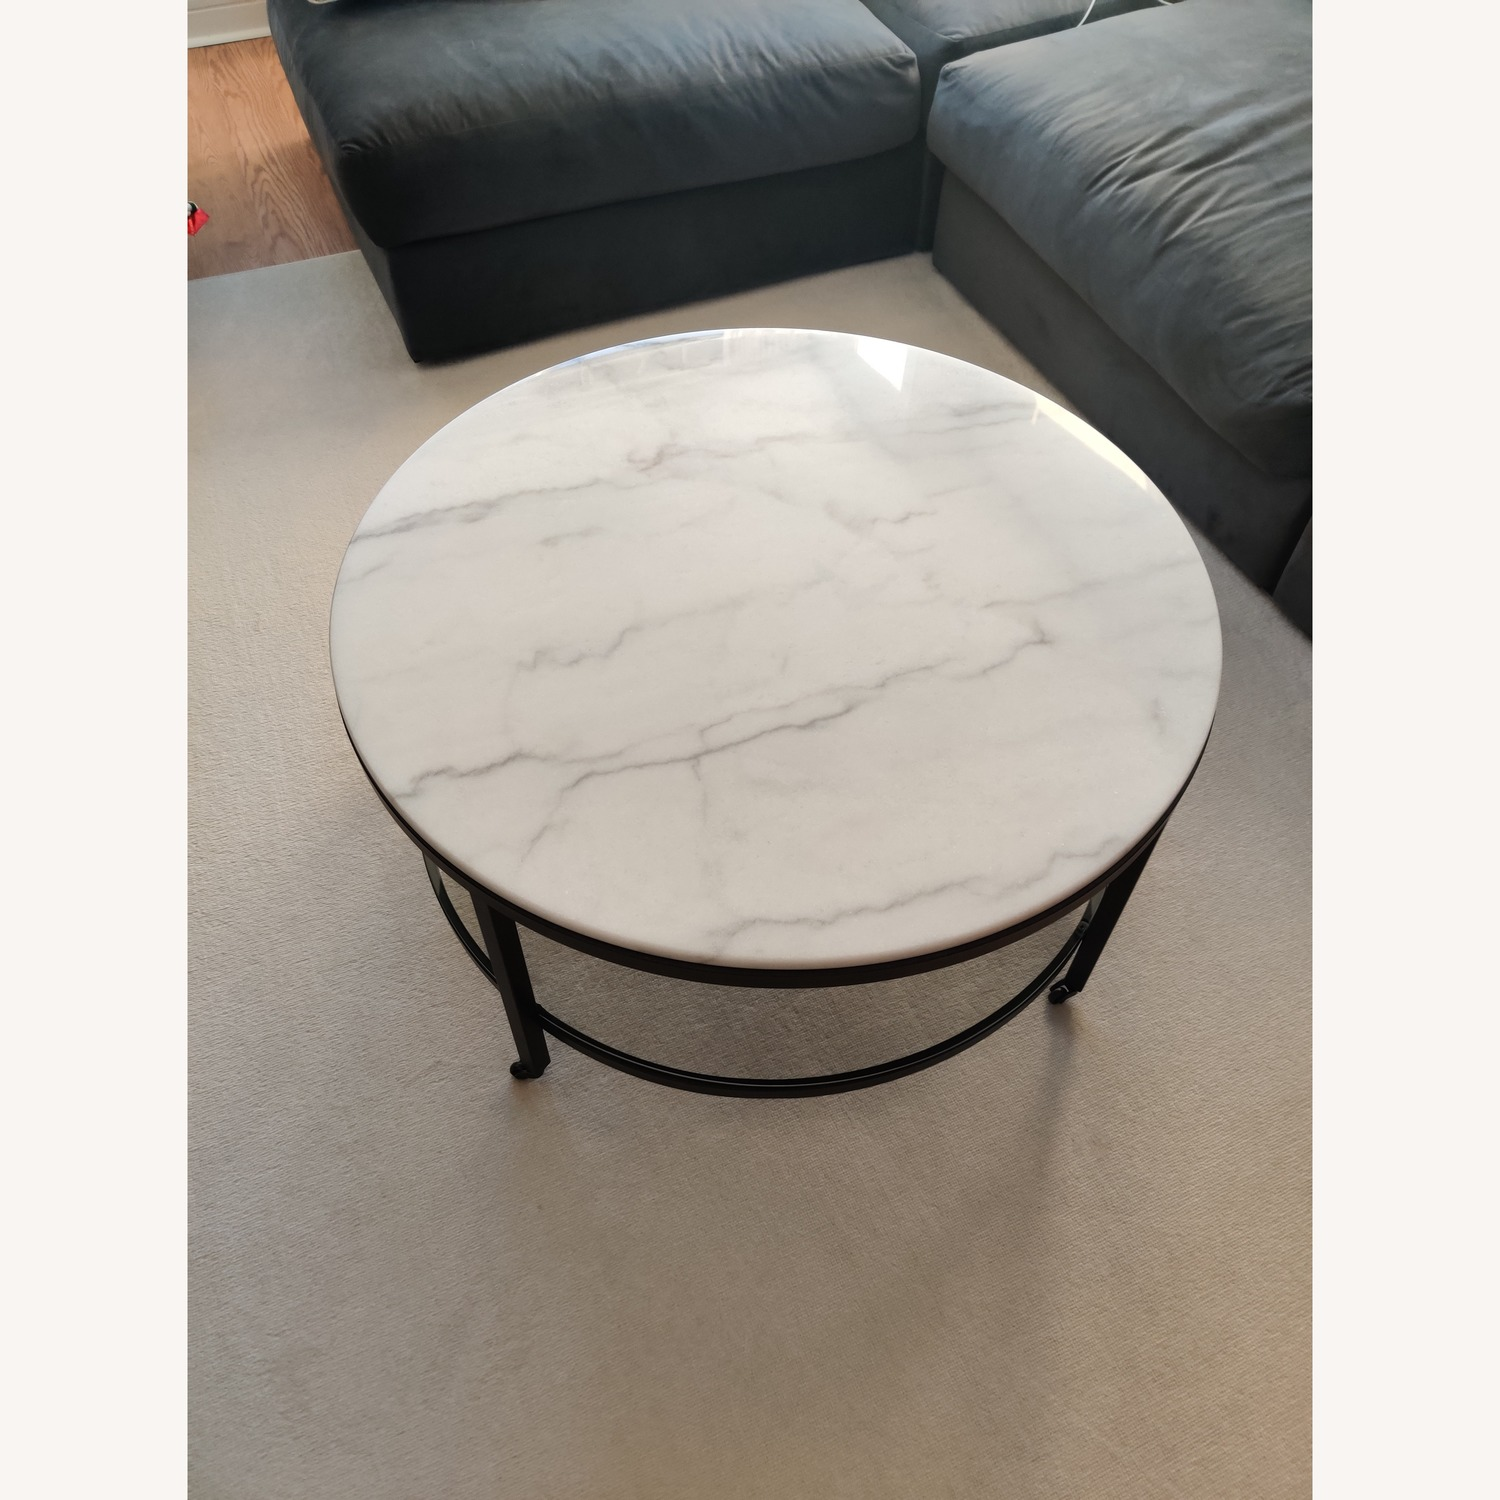 Macy's Stratus Round Marble Coffee Table - image-1